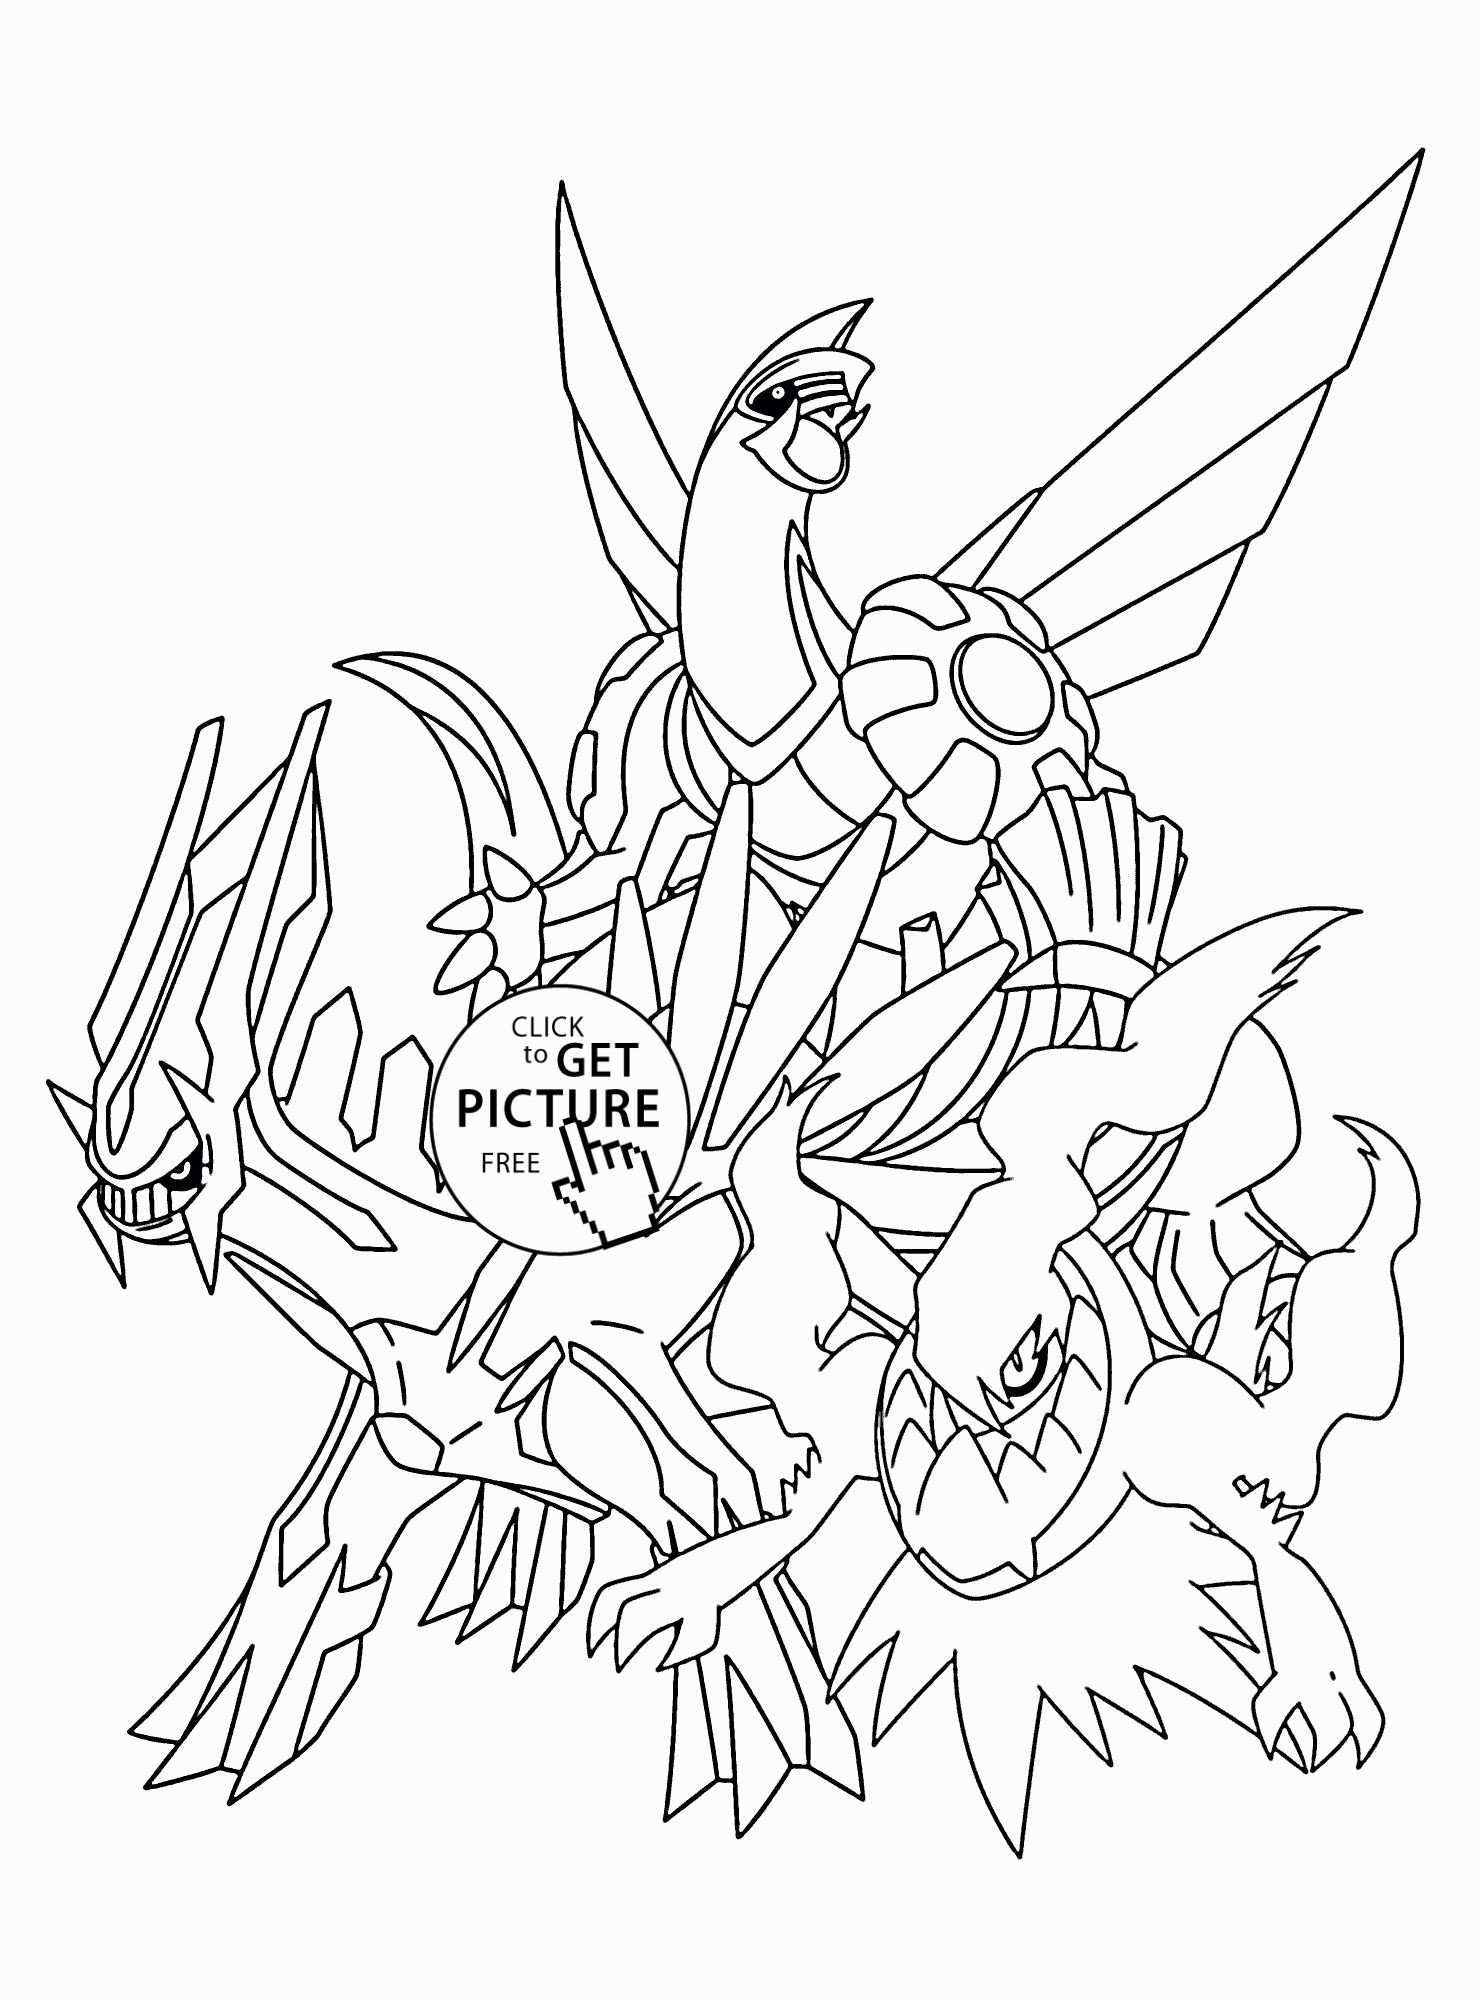 Legendary Pokemon Coloring Page Luxury Legendary Pokemon Coloring Pages For Kids Pokemon Pokemon Coloring Pages Pokemon Coloring Sheets Pokemon Coloring